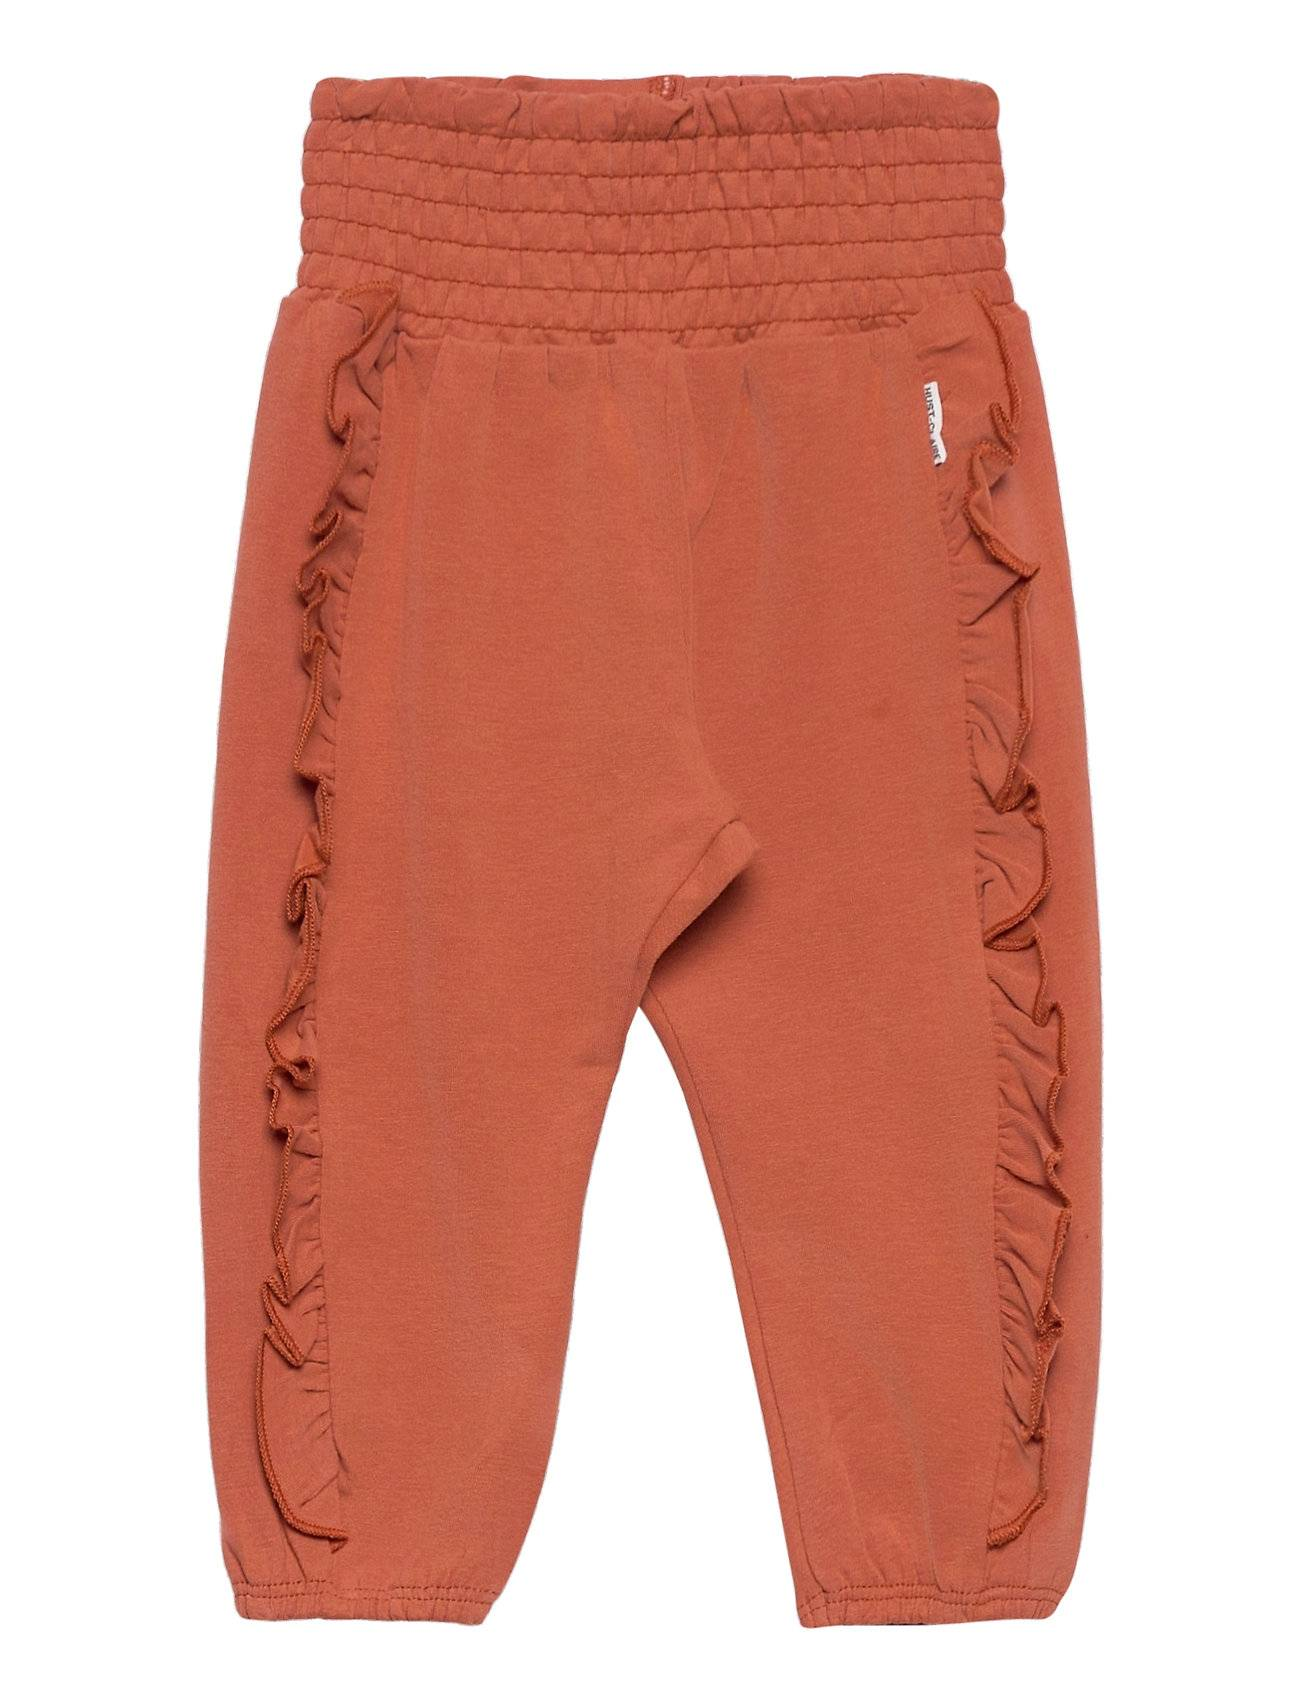 Hust & Claire Trille - Trousers Housut Ruskea Hust & Claire